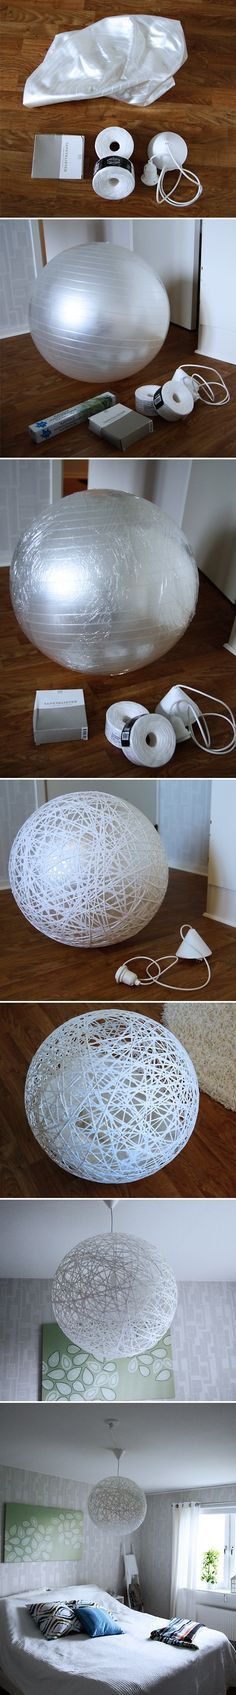 Pilates ball Wallpaper glue Paper cords (approx. 200 meters) Lamp cable Plastic sheets Wrap ball in plain plastic sheets Dip the paper cord in the glue and wrap around the ball until you are satisfied with the result. Remember to leave a hole to be able to easily replace the lamp bulb. Let dry for at least 12 hours